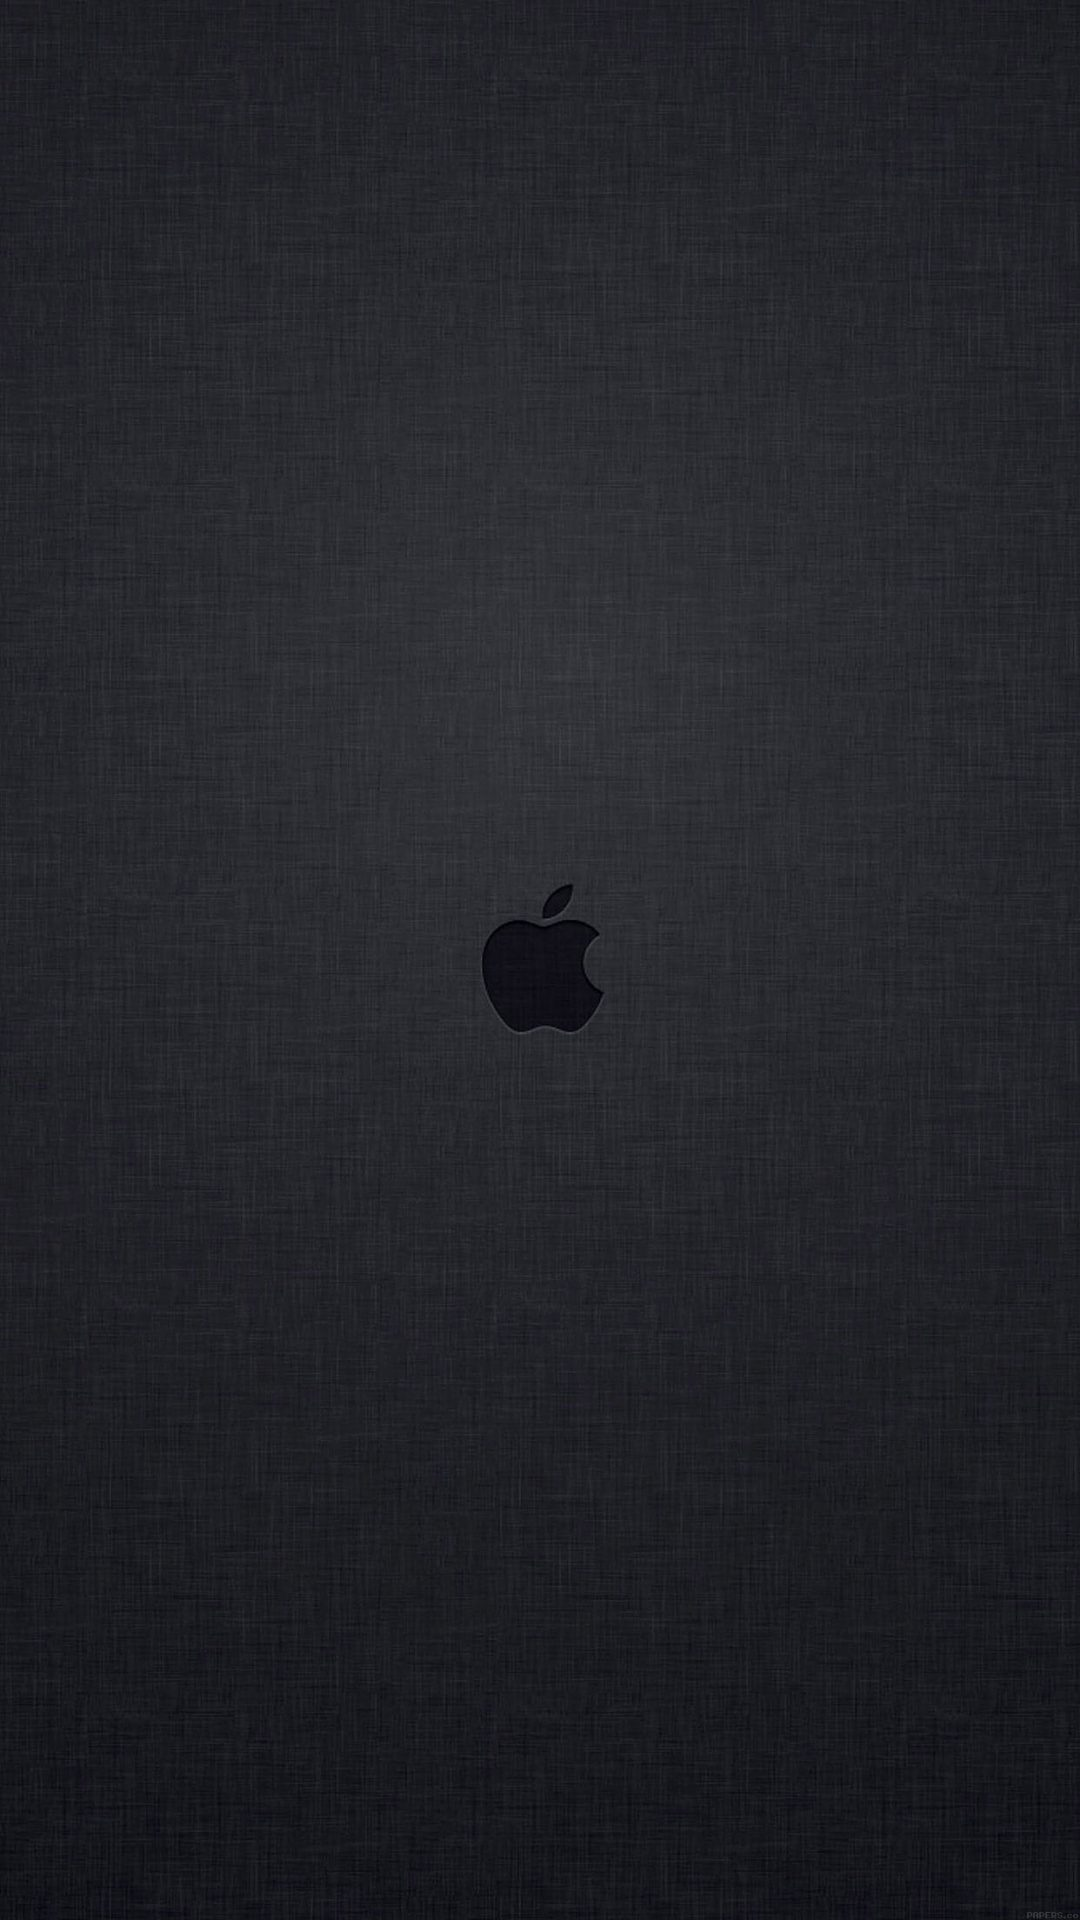 Wallpaper Tiny Apple Logo Dark